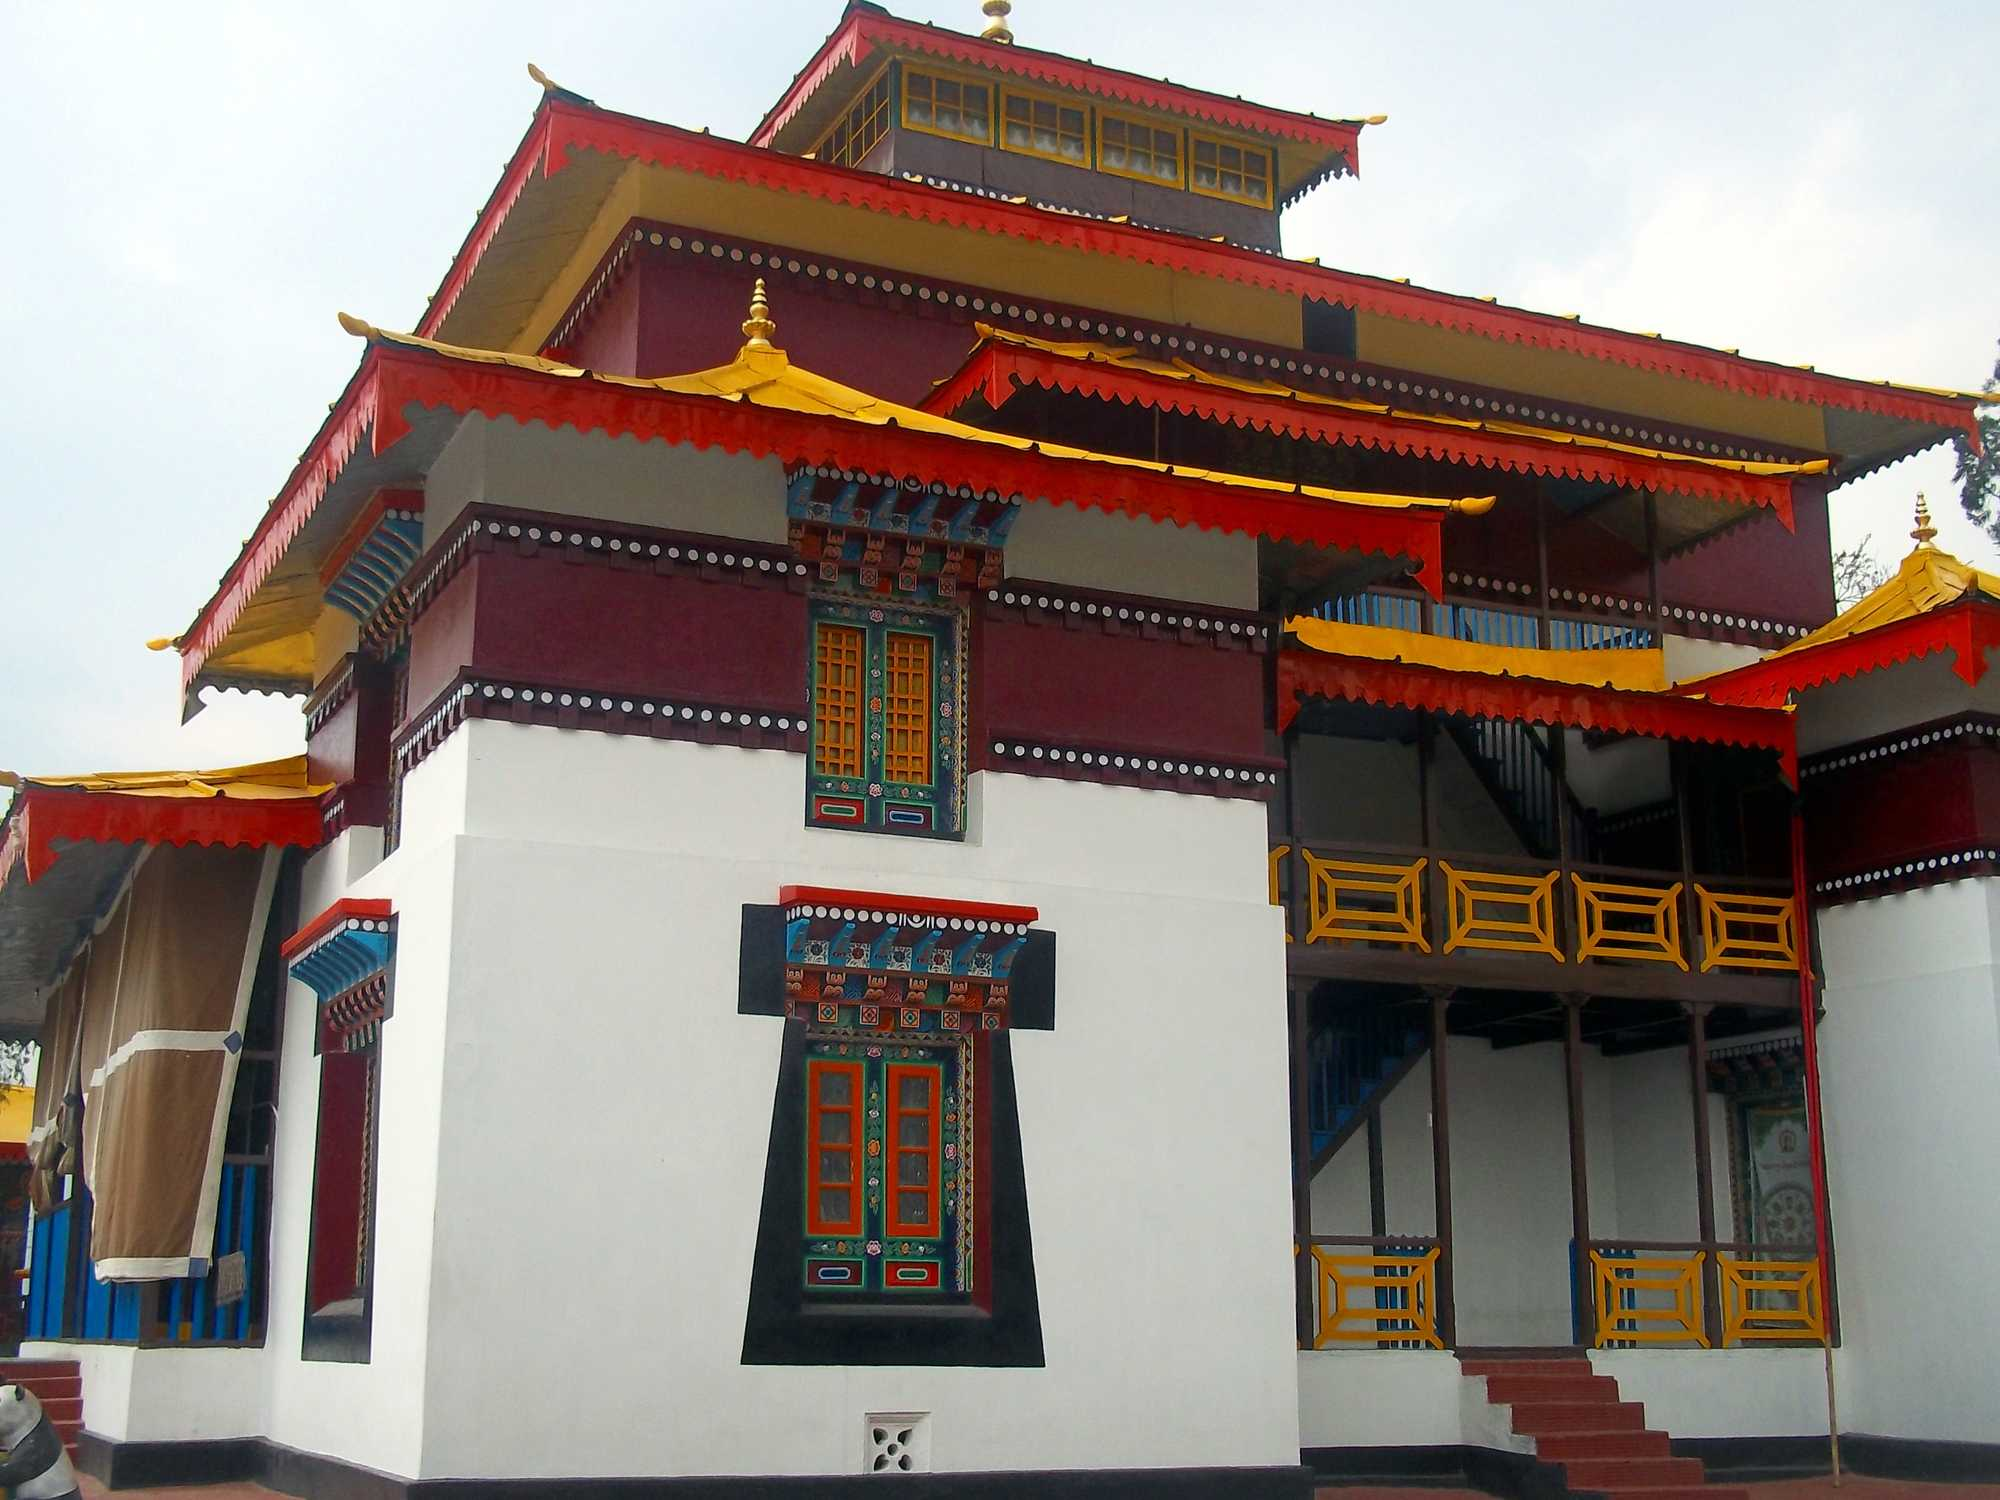 What are some quick facts about Enchey Monsatery in Sikkim, northeast India?